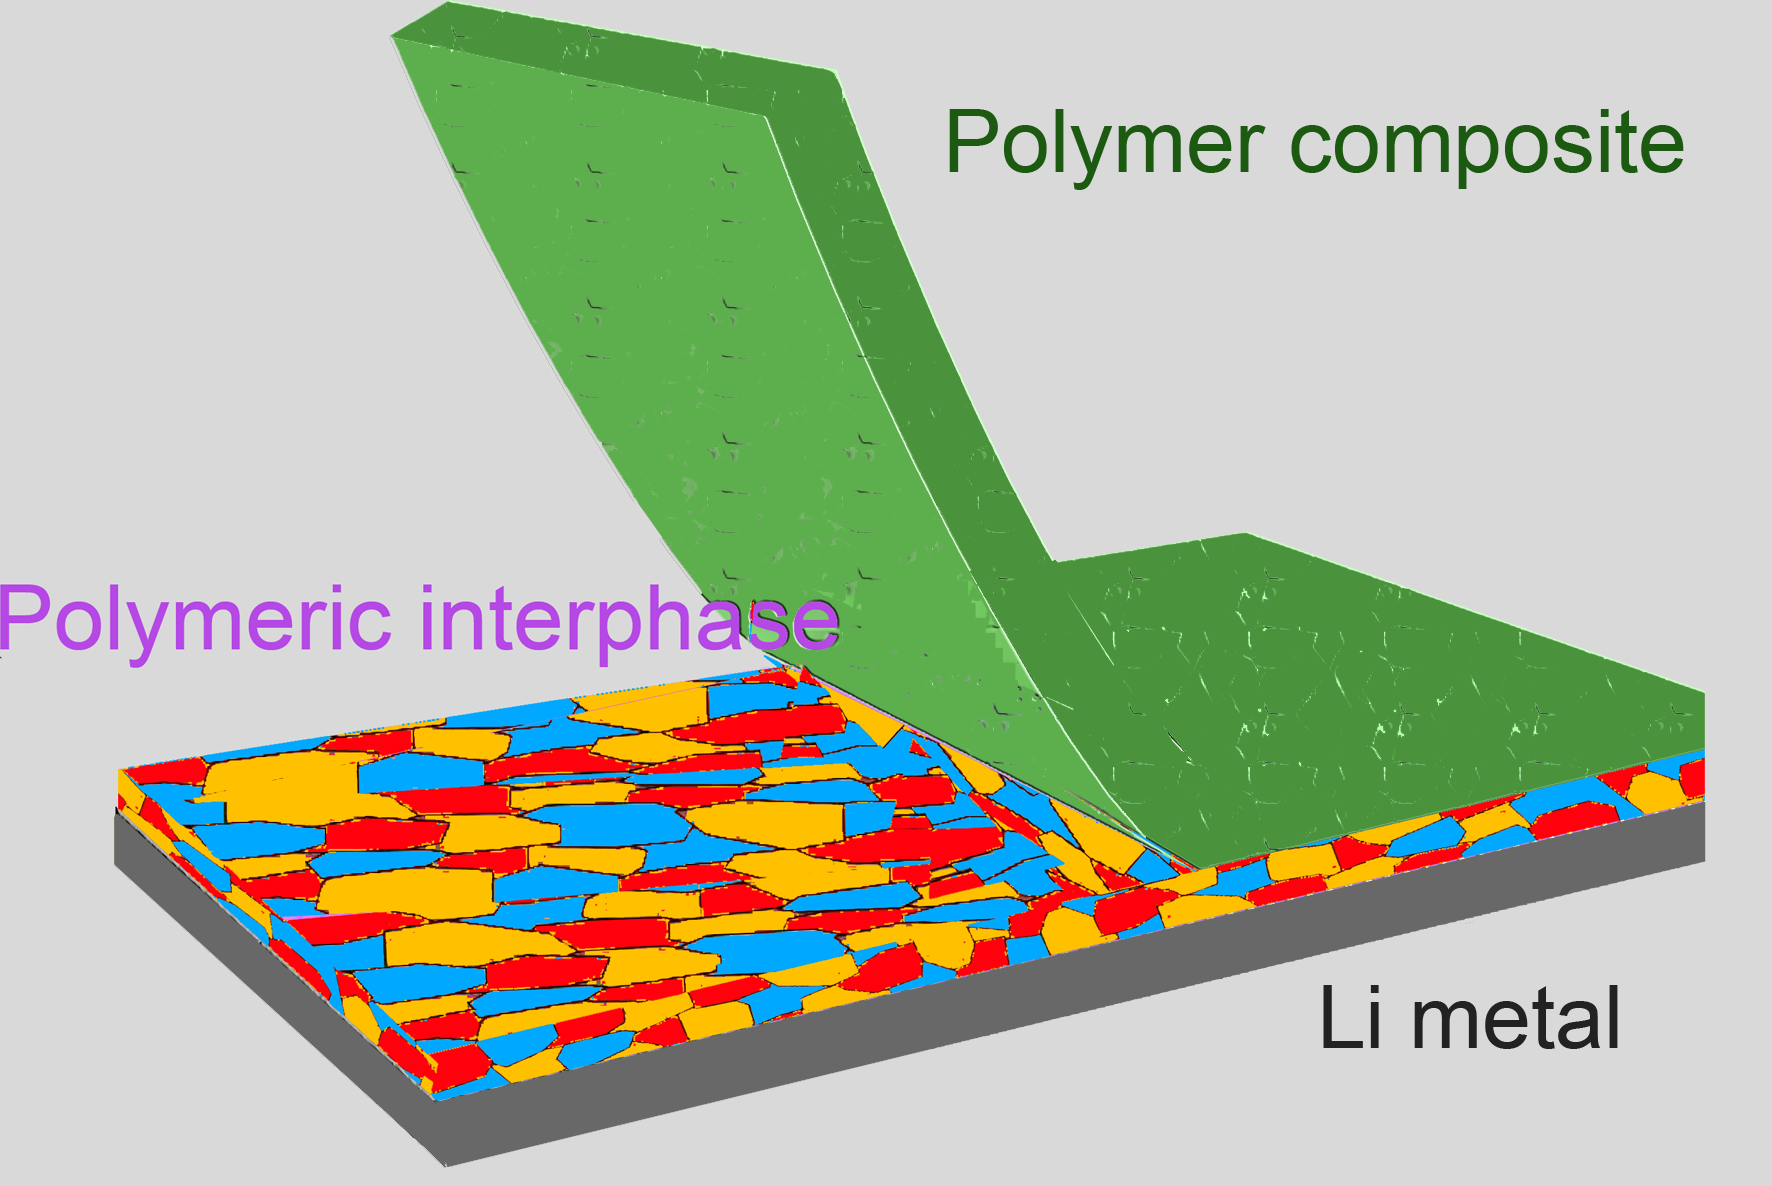 A reactive polymer composite, picturing the electrochemical interface between lithium metal anode and electrolyte is stabilized by the use of a reactive polymer composite, enabling high-performance rechargeable lithium metal batteries. (Credit: Donghai Wang)